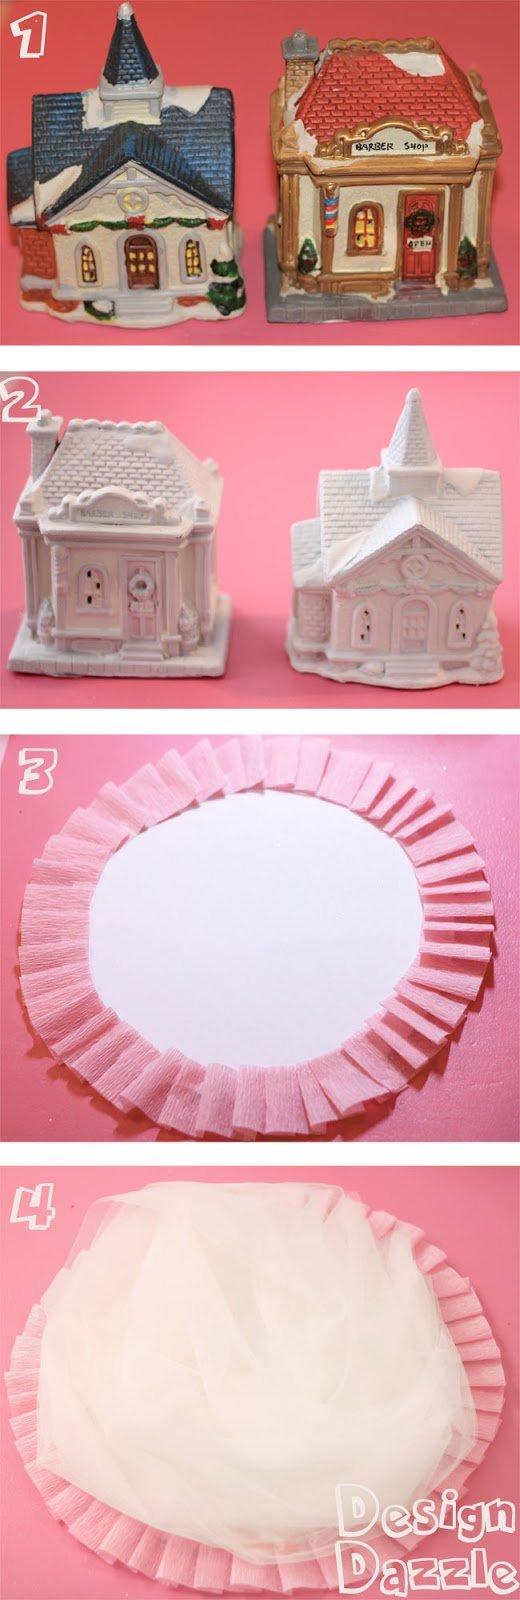 Ordinary Dollar Store decor can be made into fabulous with a little paint and glitter! By Design Dazzle